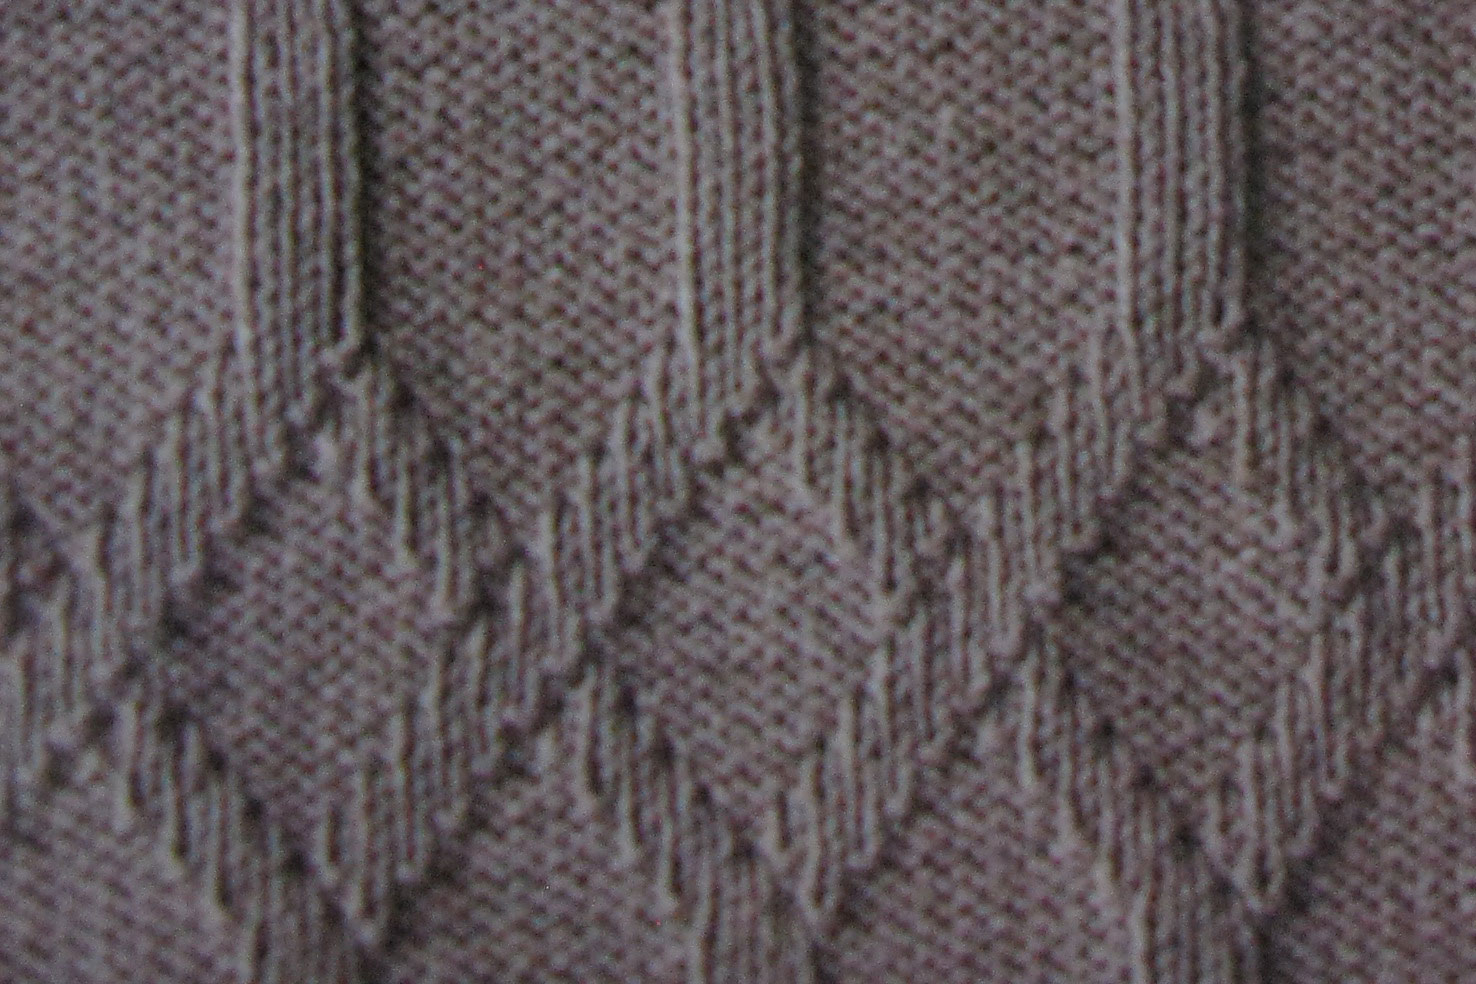 Interlinked Diamonds Knit and Purl Stitch - Knitting Kingdom